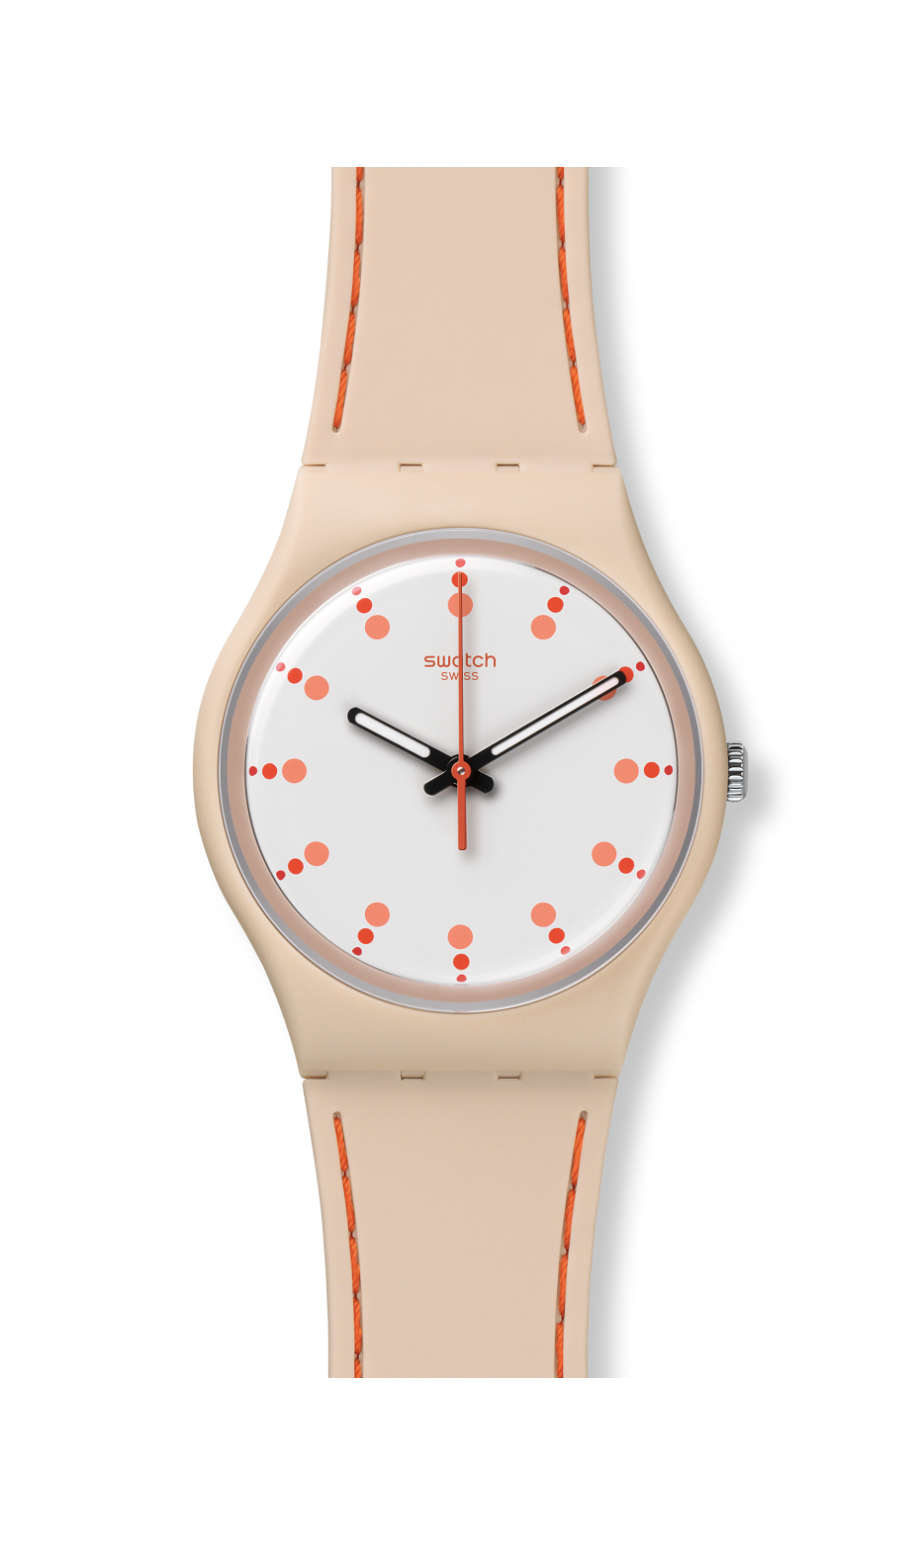 Swatch - SOFT DAY - 1